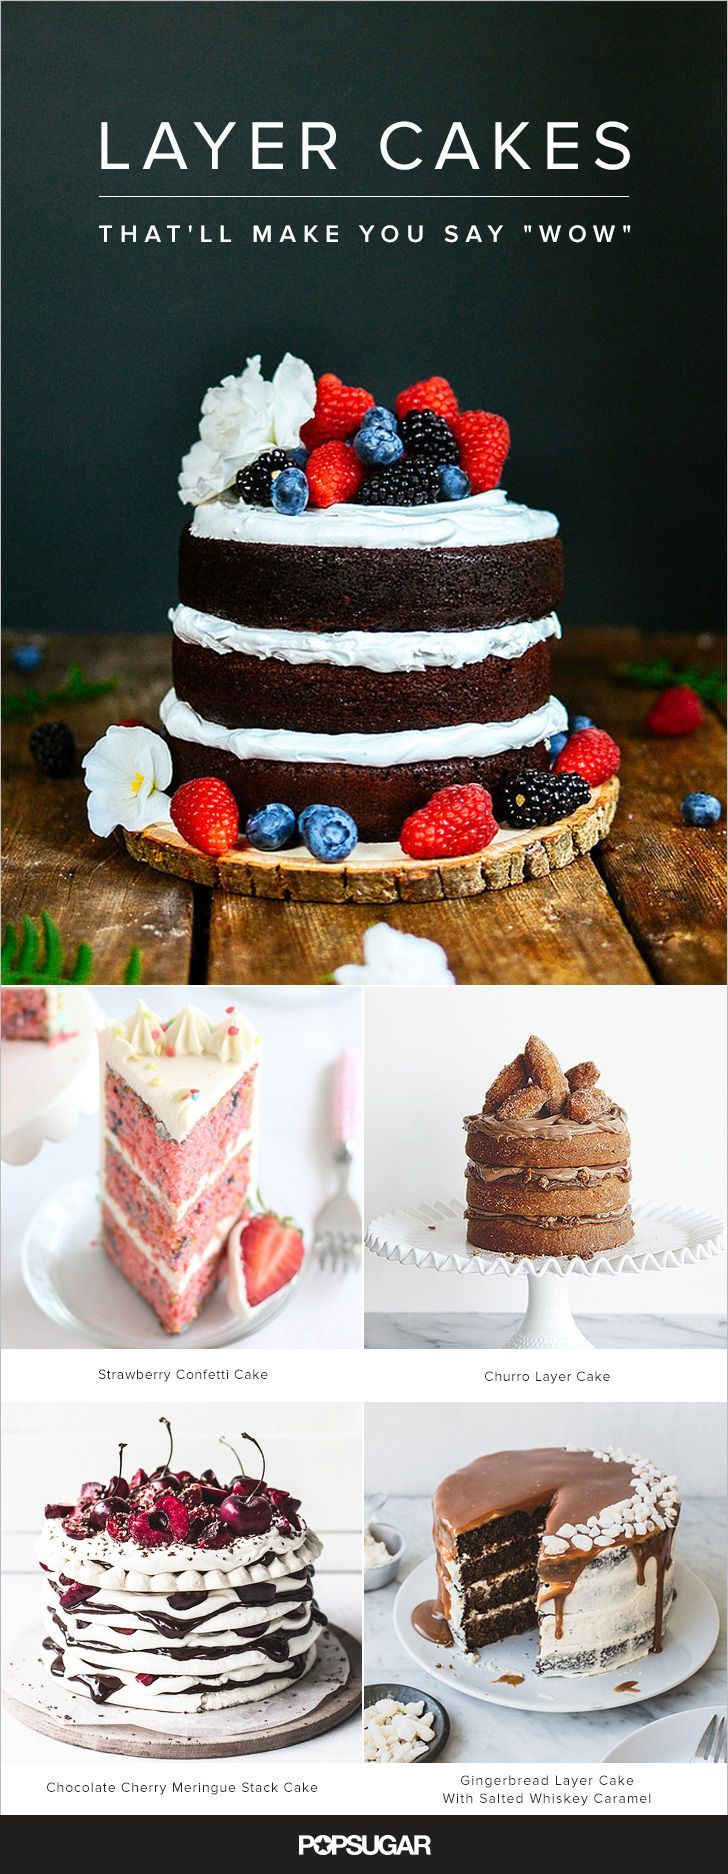 A layer cake is certainly more of an undertaking than many desserts, but nothing quite brings the party like a towering, frosted cake. The next time a celebration is in order, be it a birthday, a baby shower, or any other festive occasion, consider one of these showstopping recipes. Pin a few now so you'll be set for the next occasion.